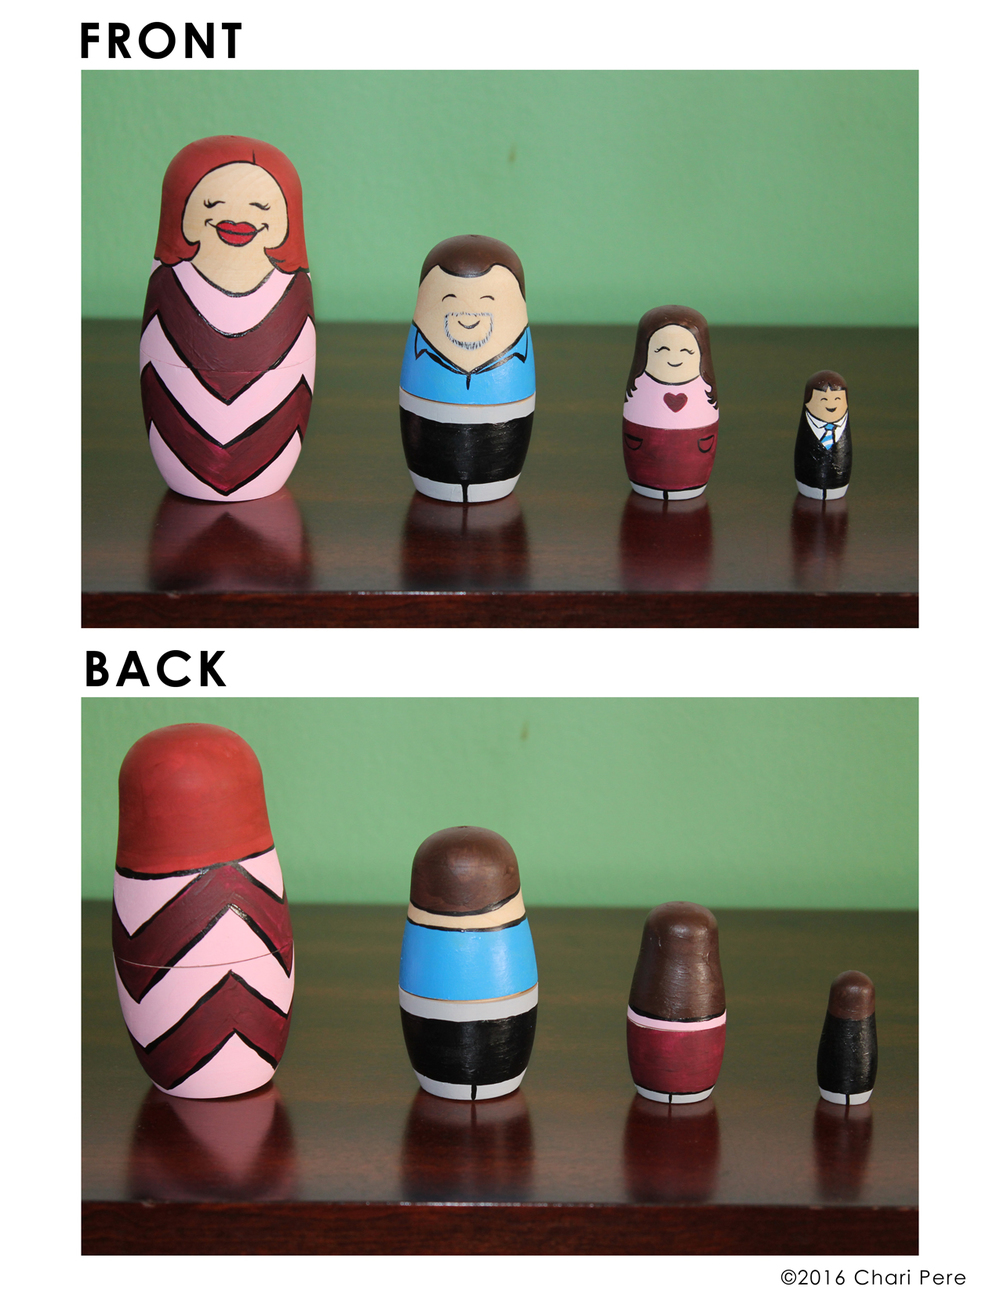 Russian Nesting Doll Caricatures #1